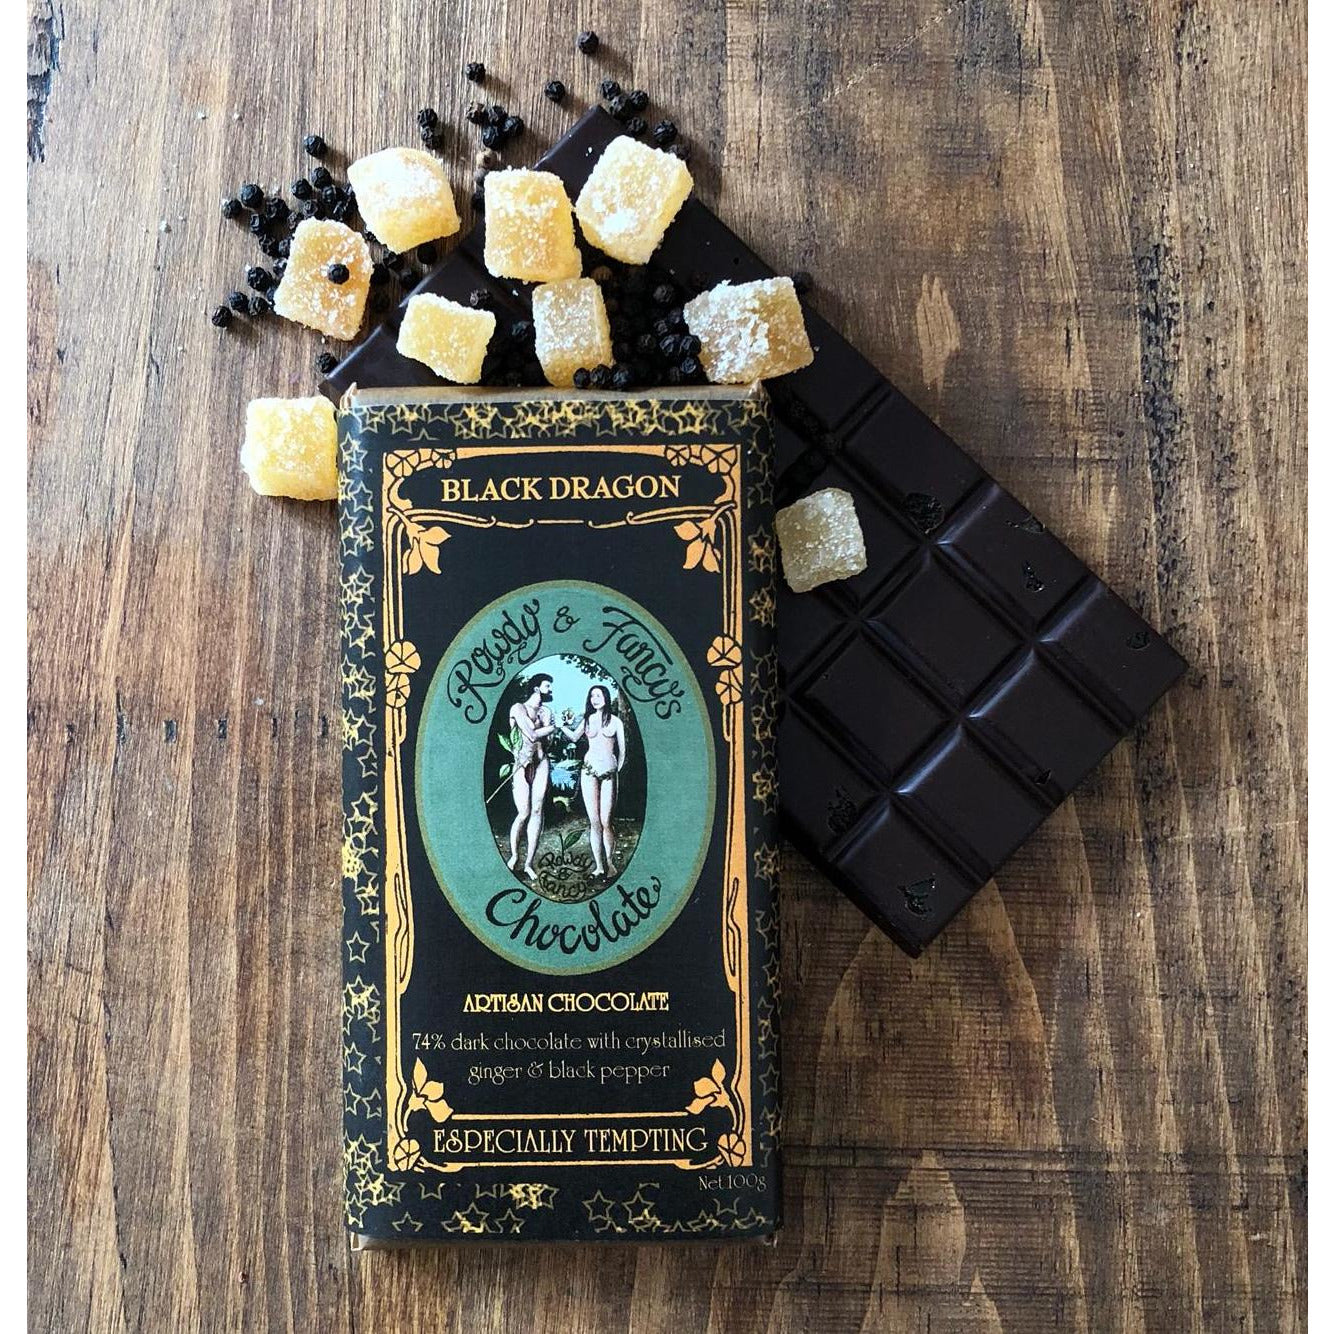 Image of Black-Dragon chocolate bar by chocolatier Rowdy_Fancy photographed on wooden surface with ginger pieces